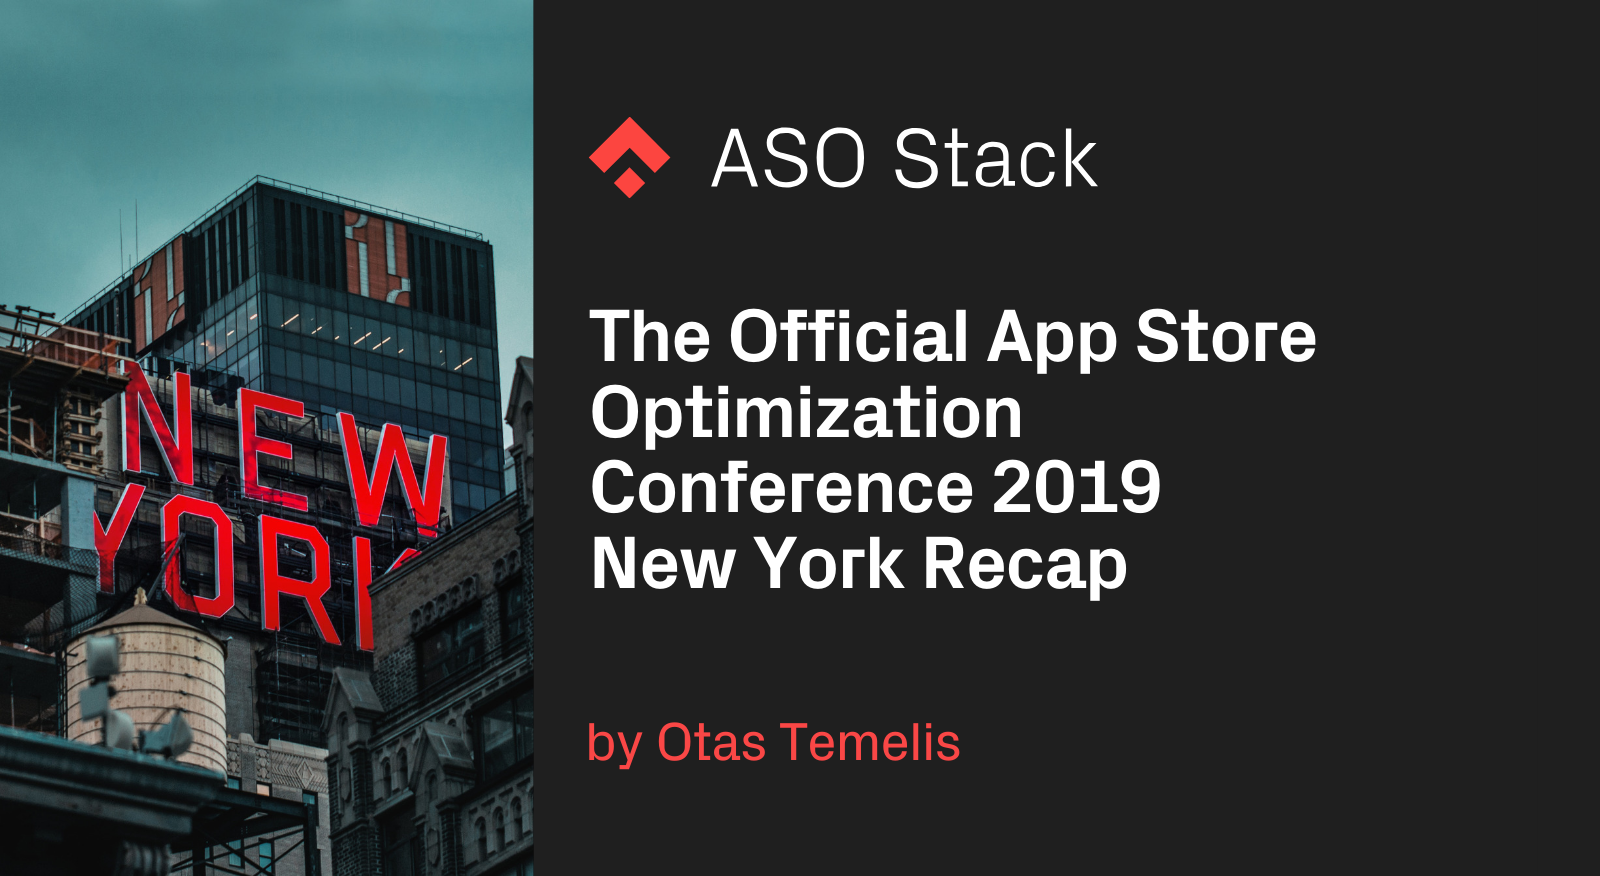 The Official App Store Optimization Conference 2019 New York